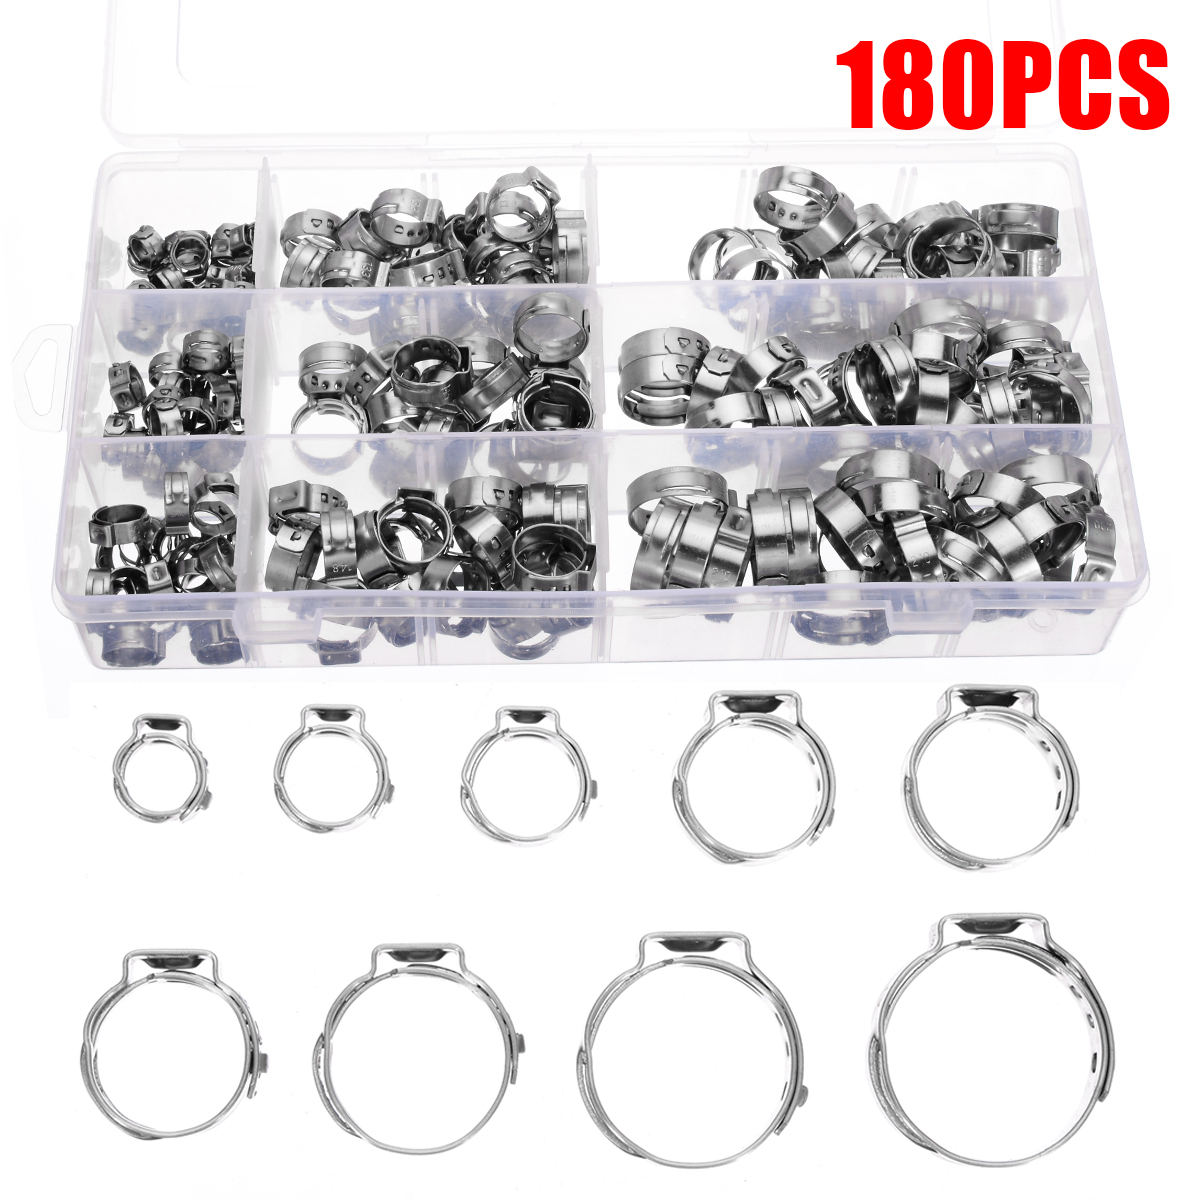 180pcs/kit Stainless Steel Single Ear Hose Clamp Hose Clamp Assortment Kit Ear Stepless Cinch Rings Crimp Pinch Fit 5.8-21mm